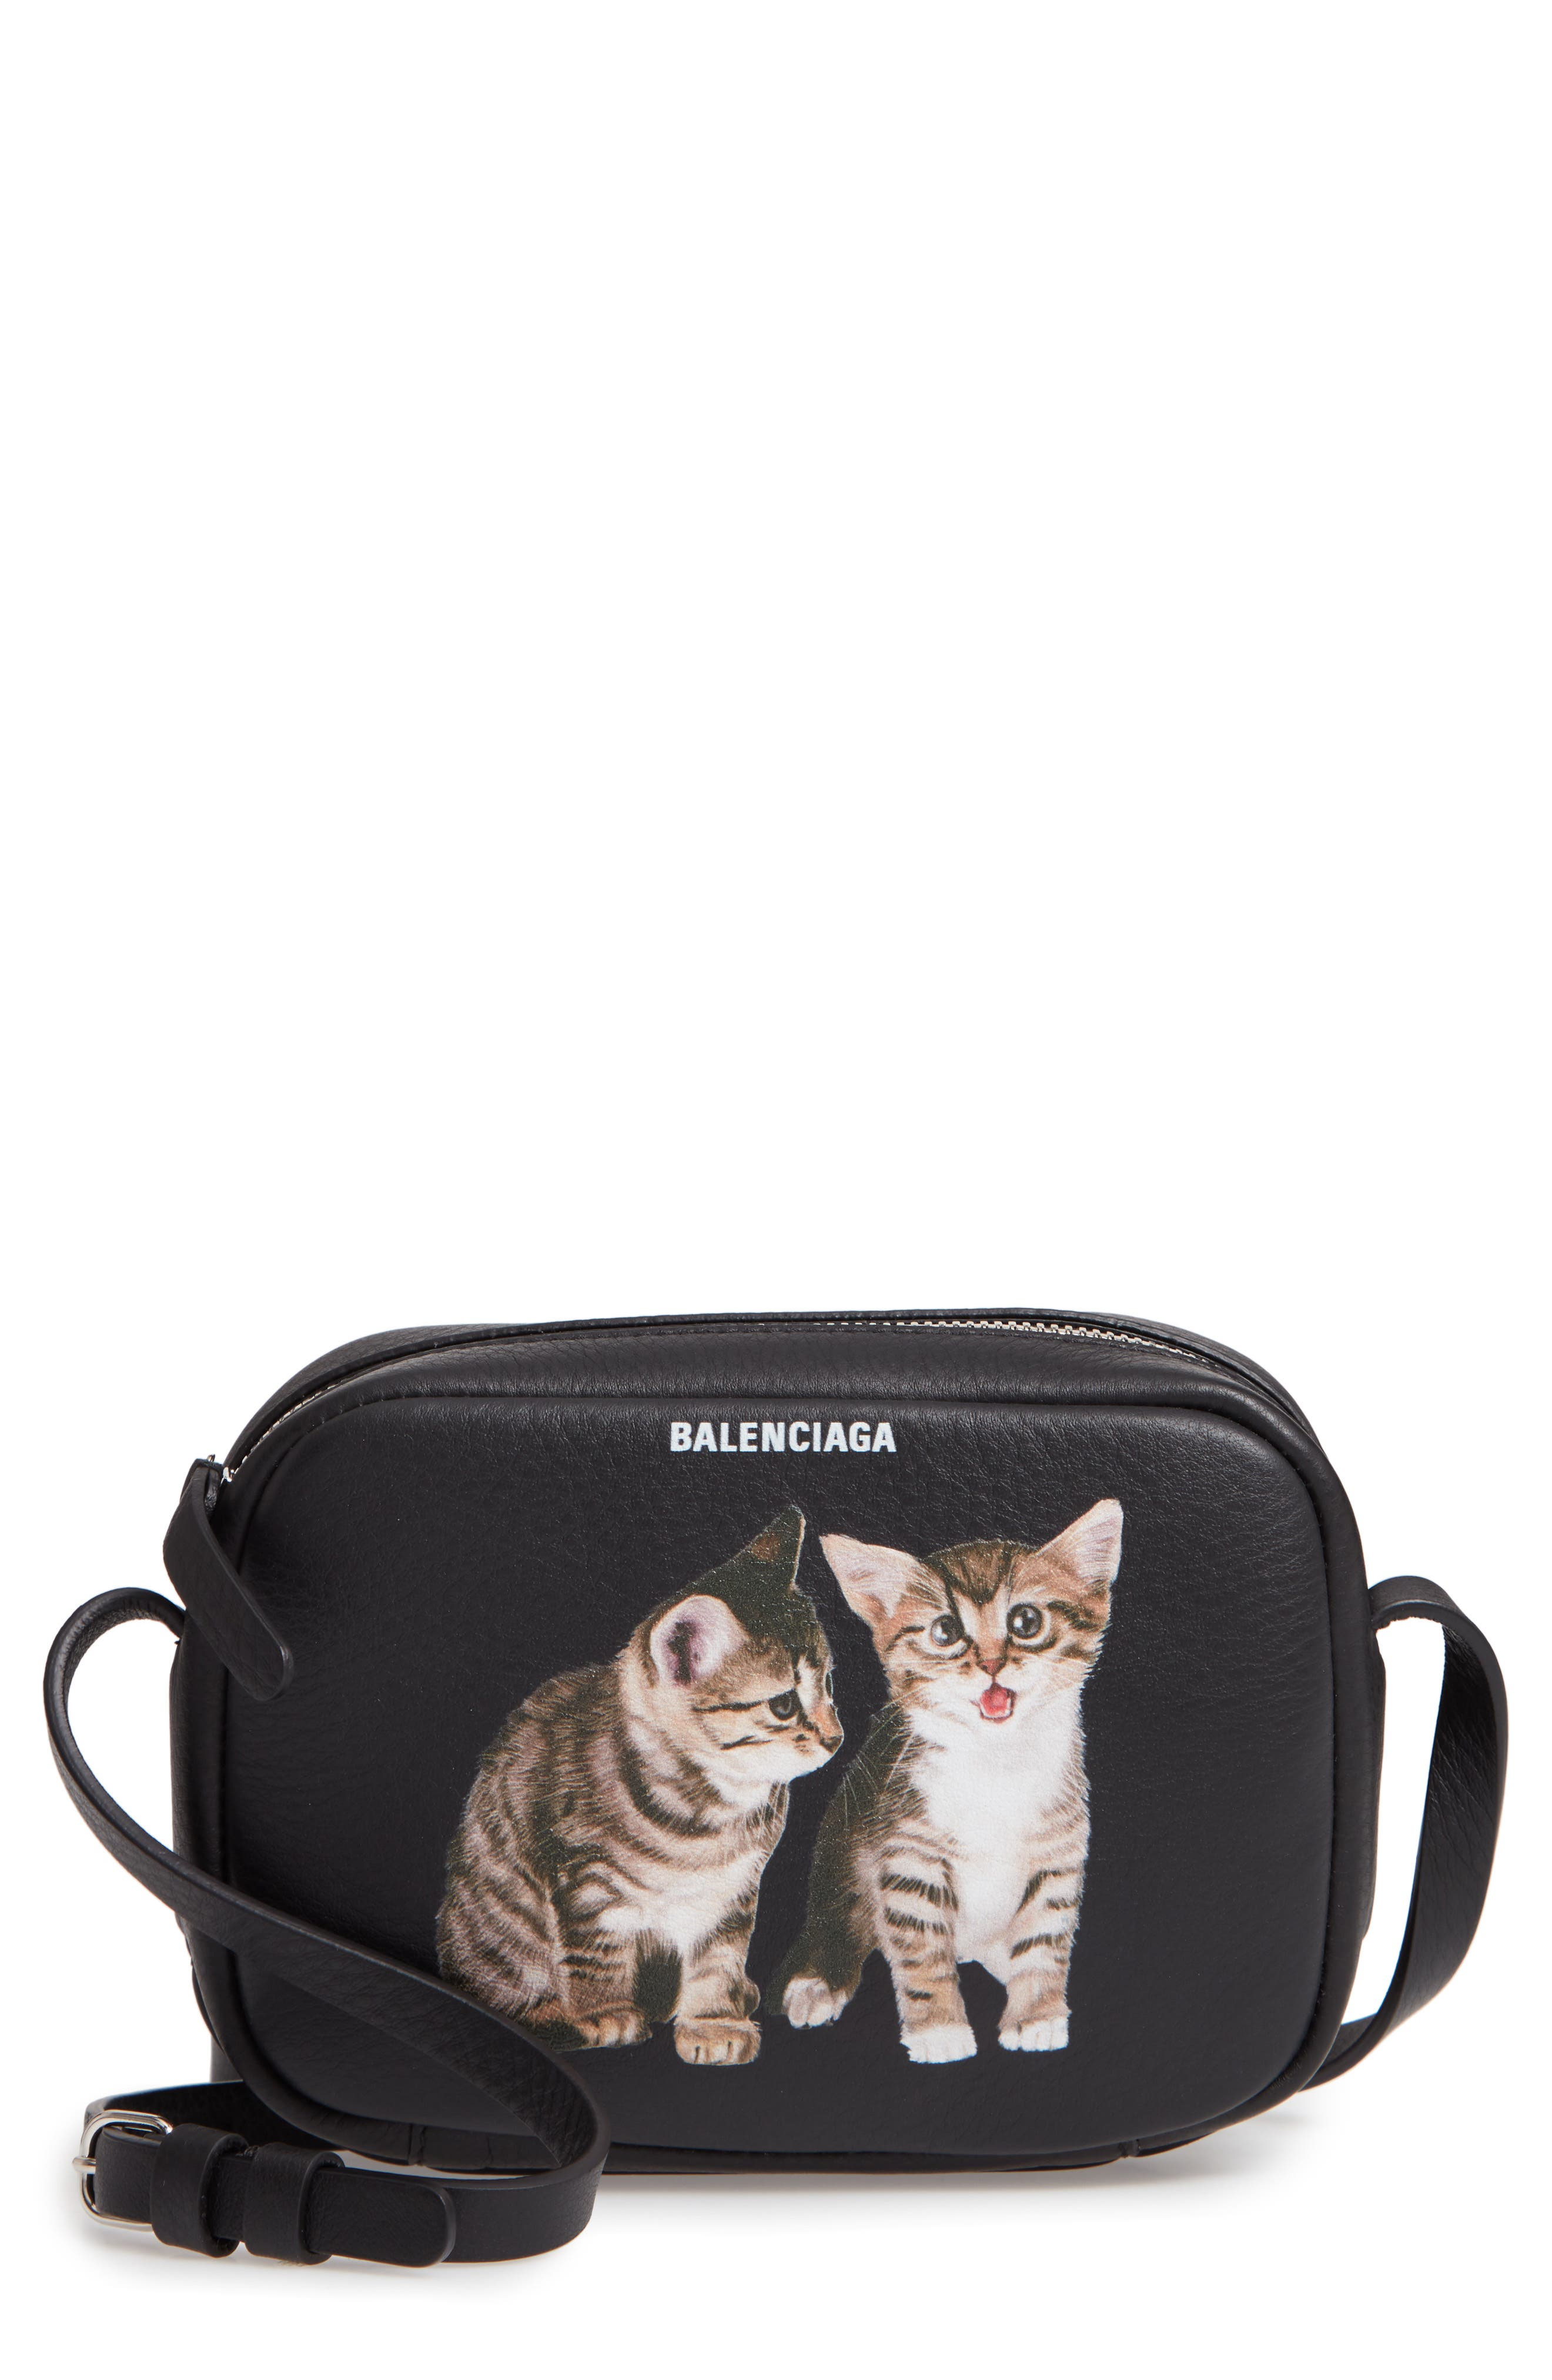 Extra Small Kittens Calfskin Leather Camera Bag,                         Main,                         color, NOIR/ BLANC